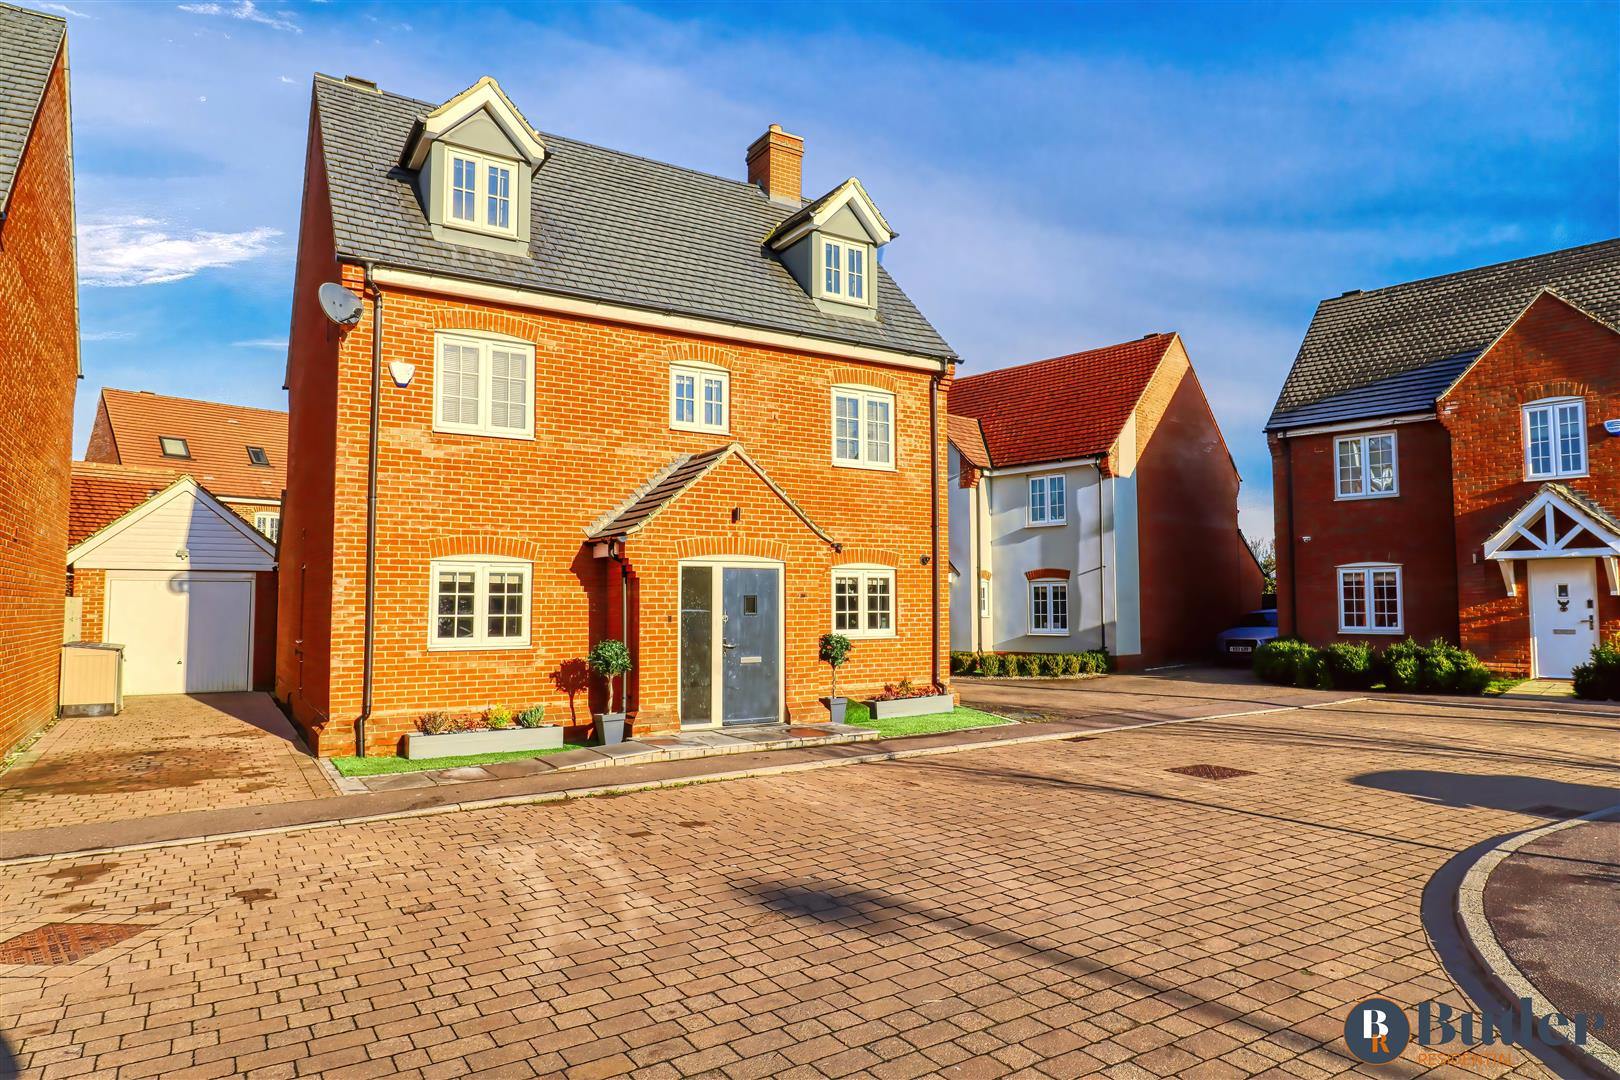 5 bed detached house for sale in Woodpecker Gardens, Bedford  - Property Image 1